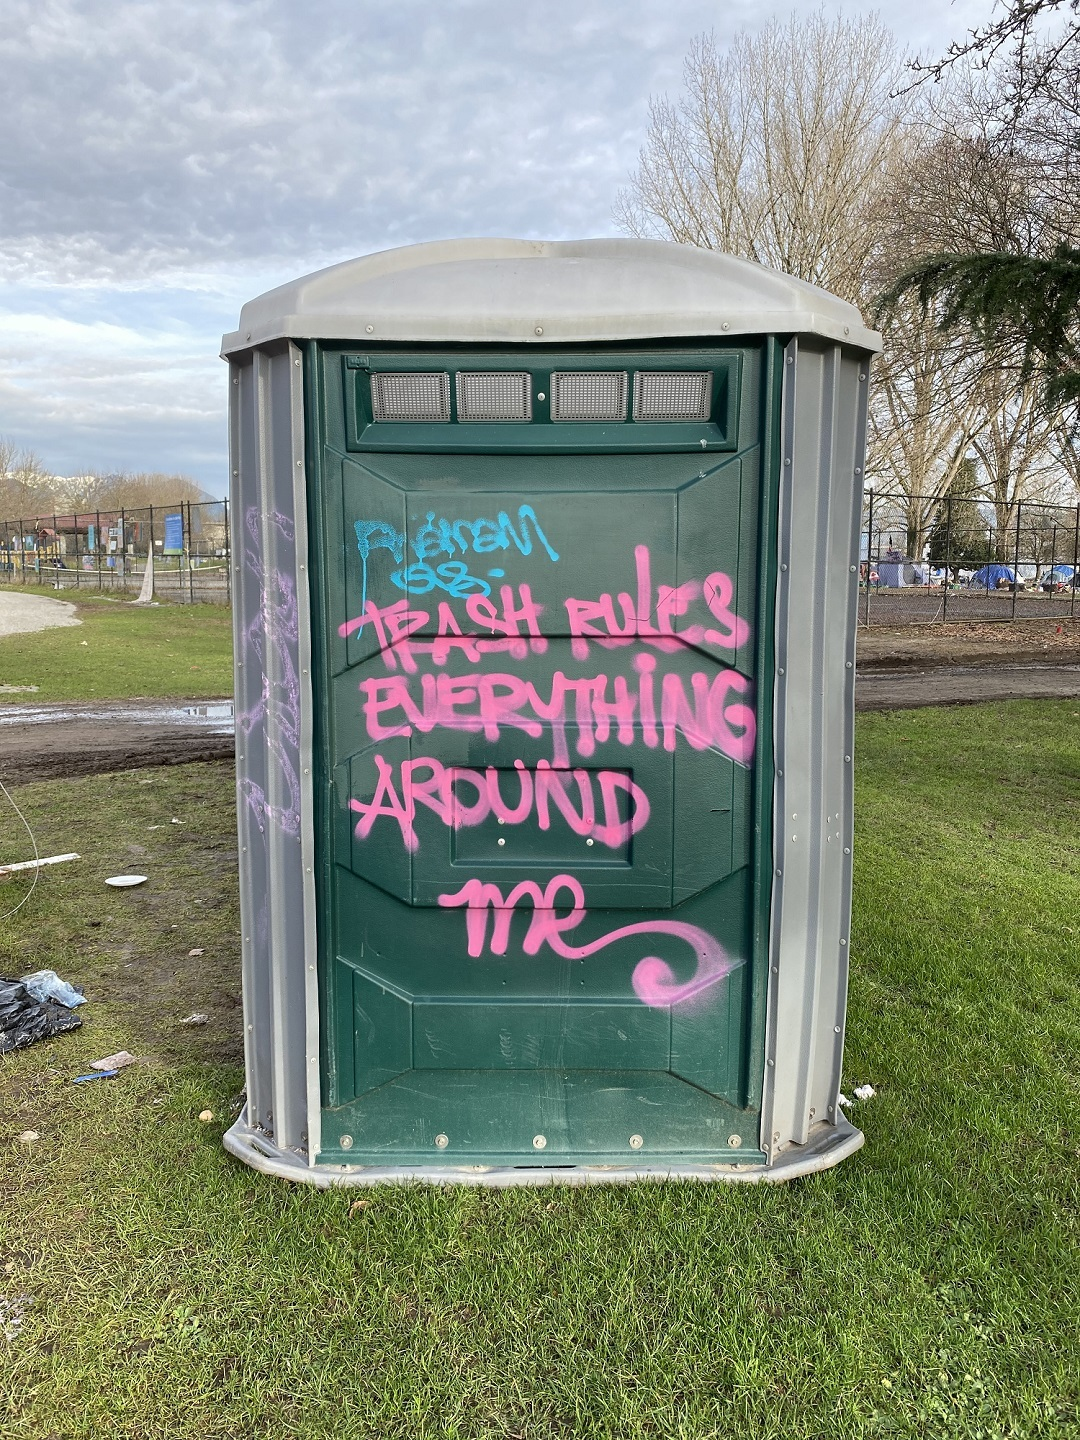 Graffiti scrawled on a portable toilet captures the sentiment of some about the state of Strathcona Park. (Stephen Quinn)